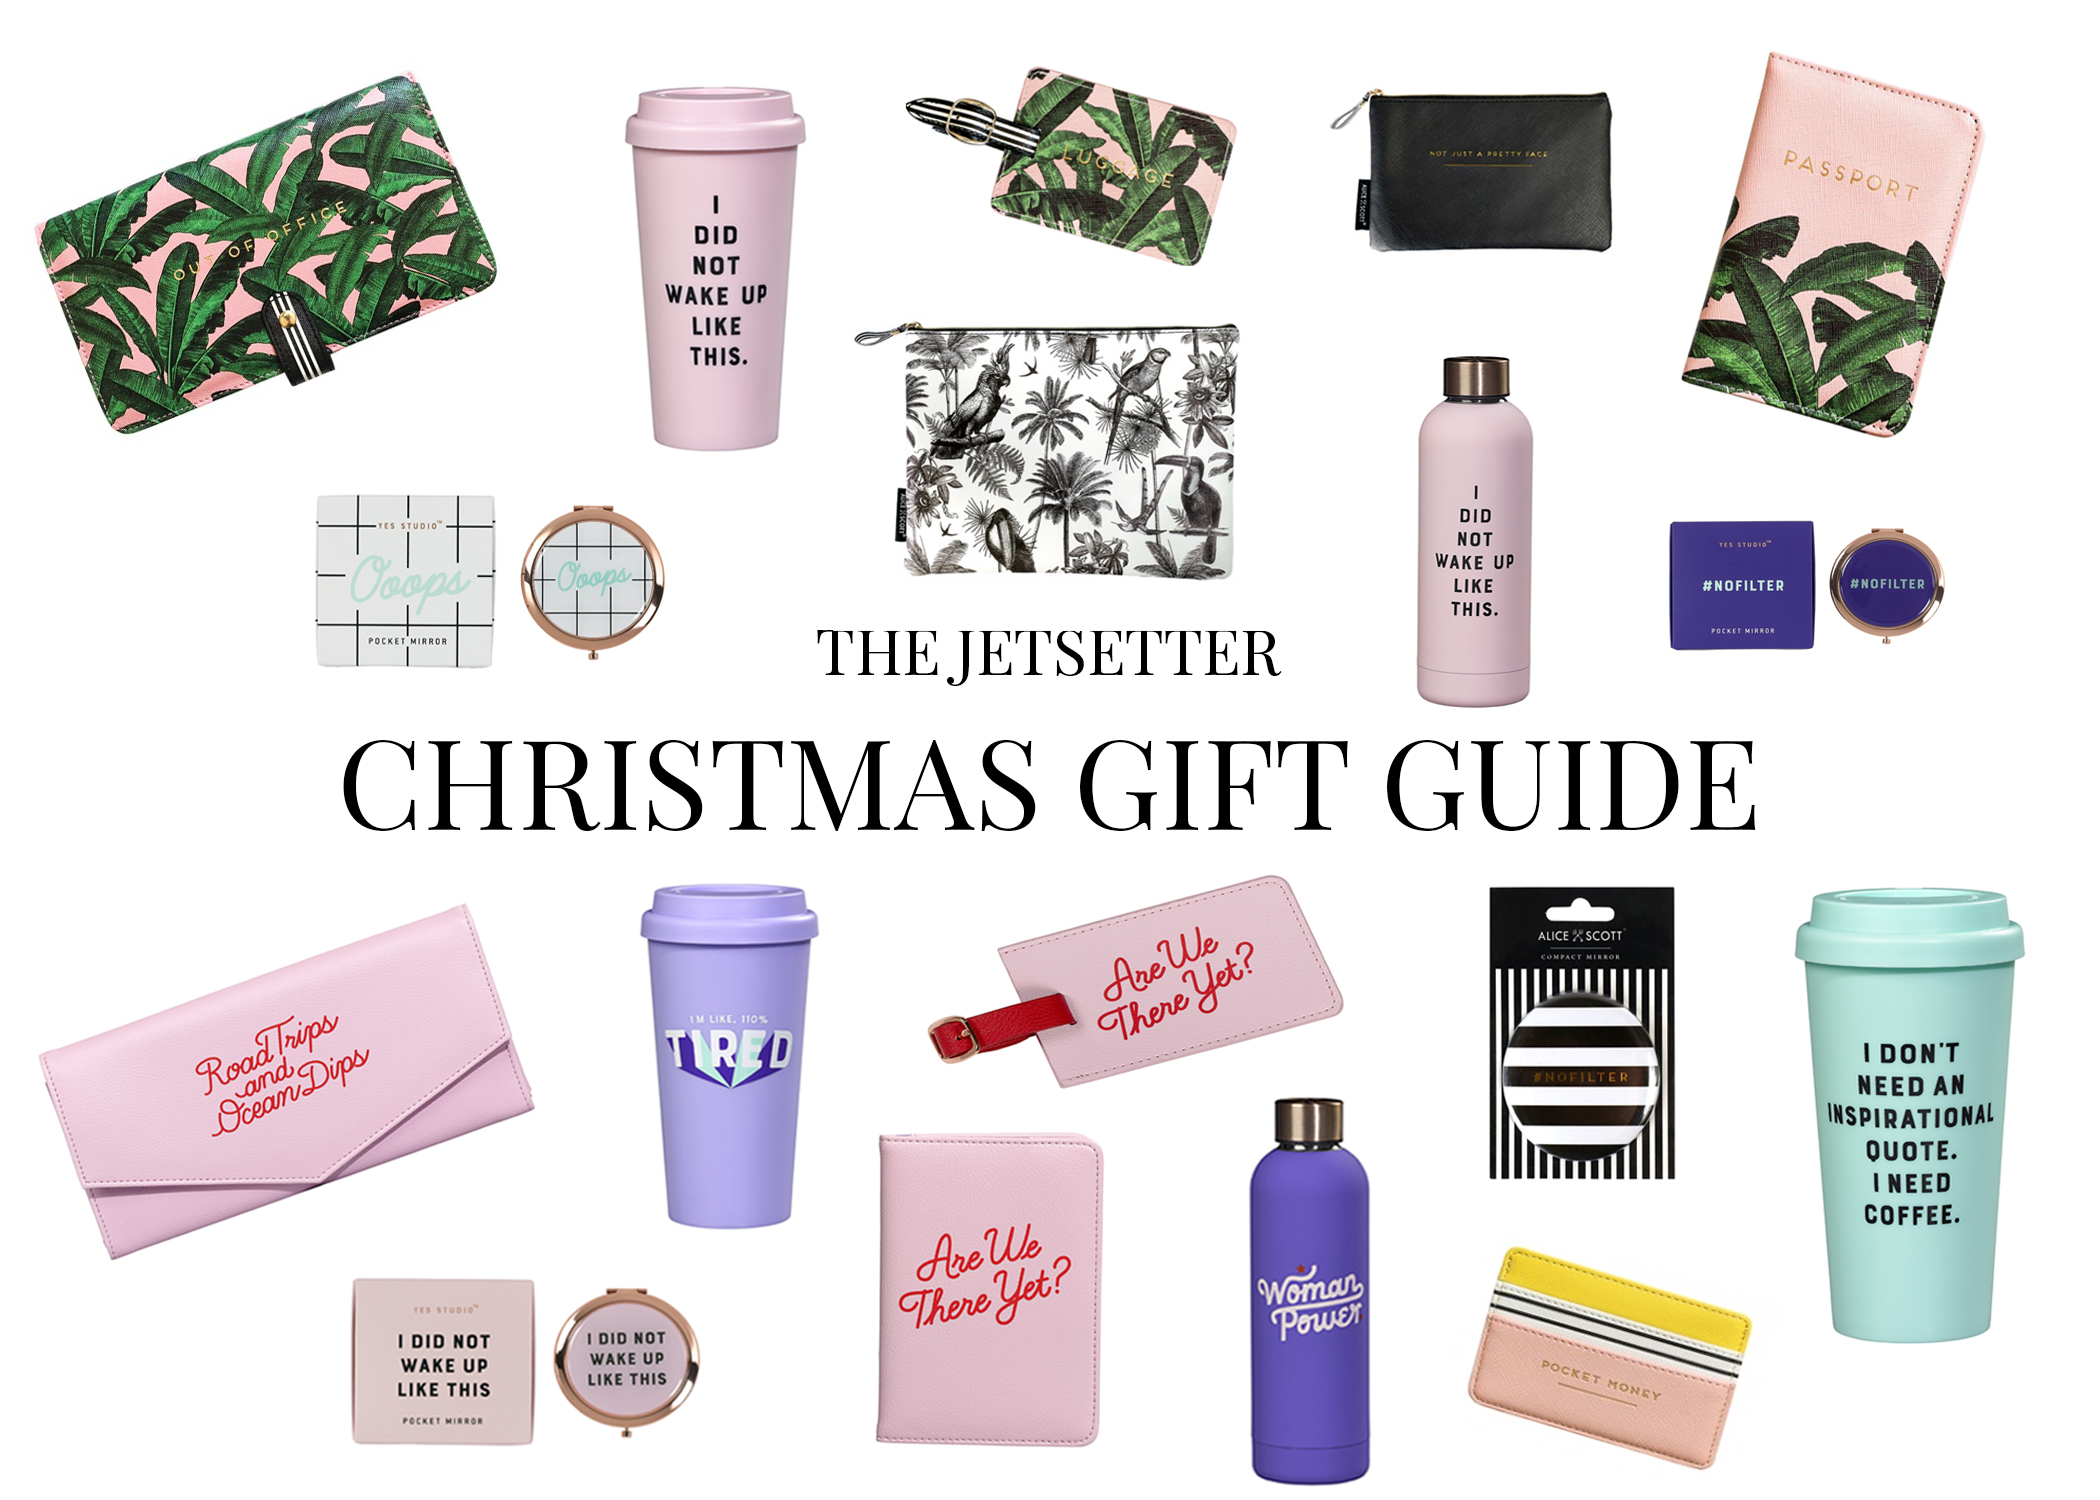 The Jetsetter Christmas Gift Guide